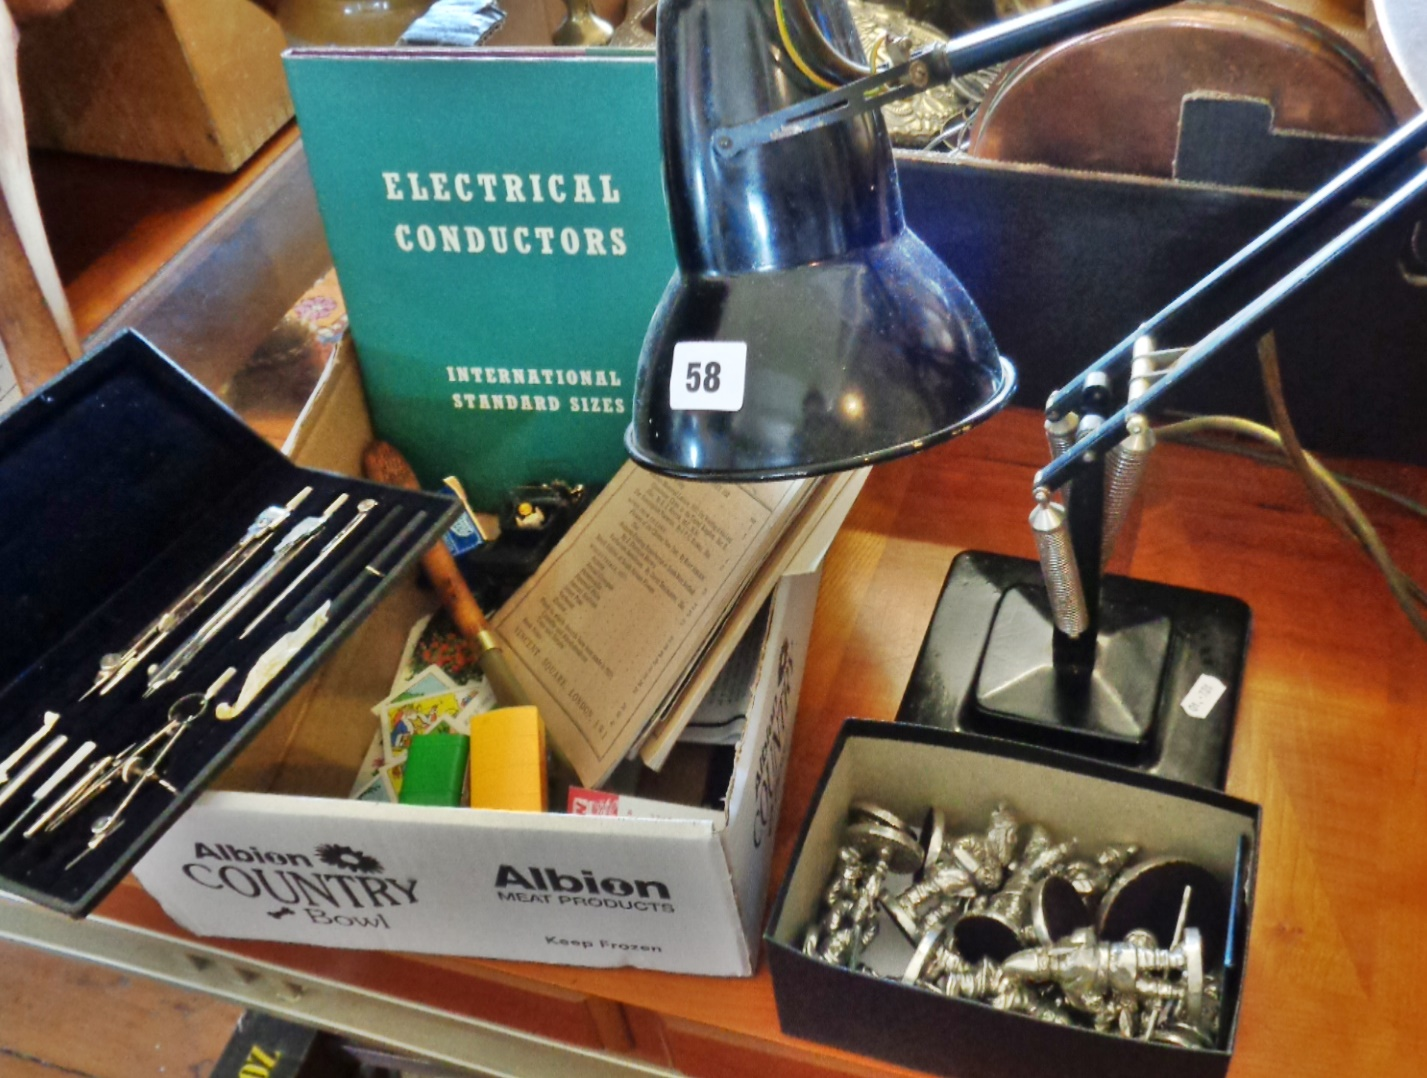 Lot 58 - 1930s Herbert Terry black Anglepoise lamp with stepped base, box of Royal Hampshire pewter